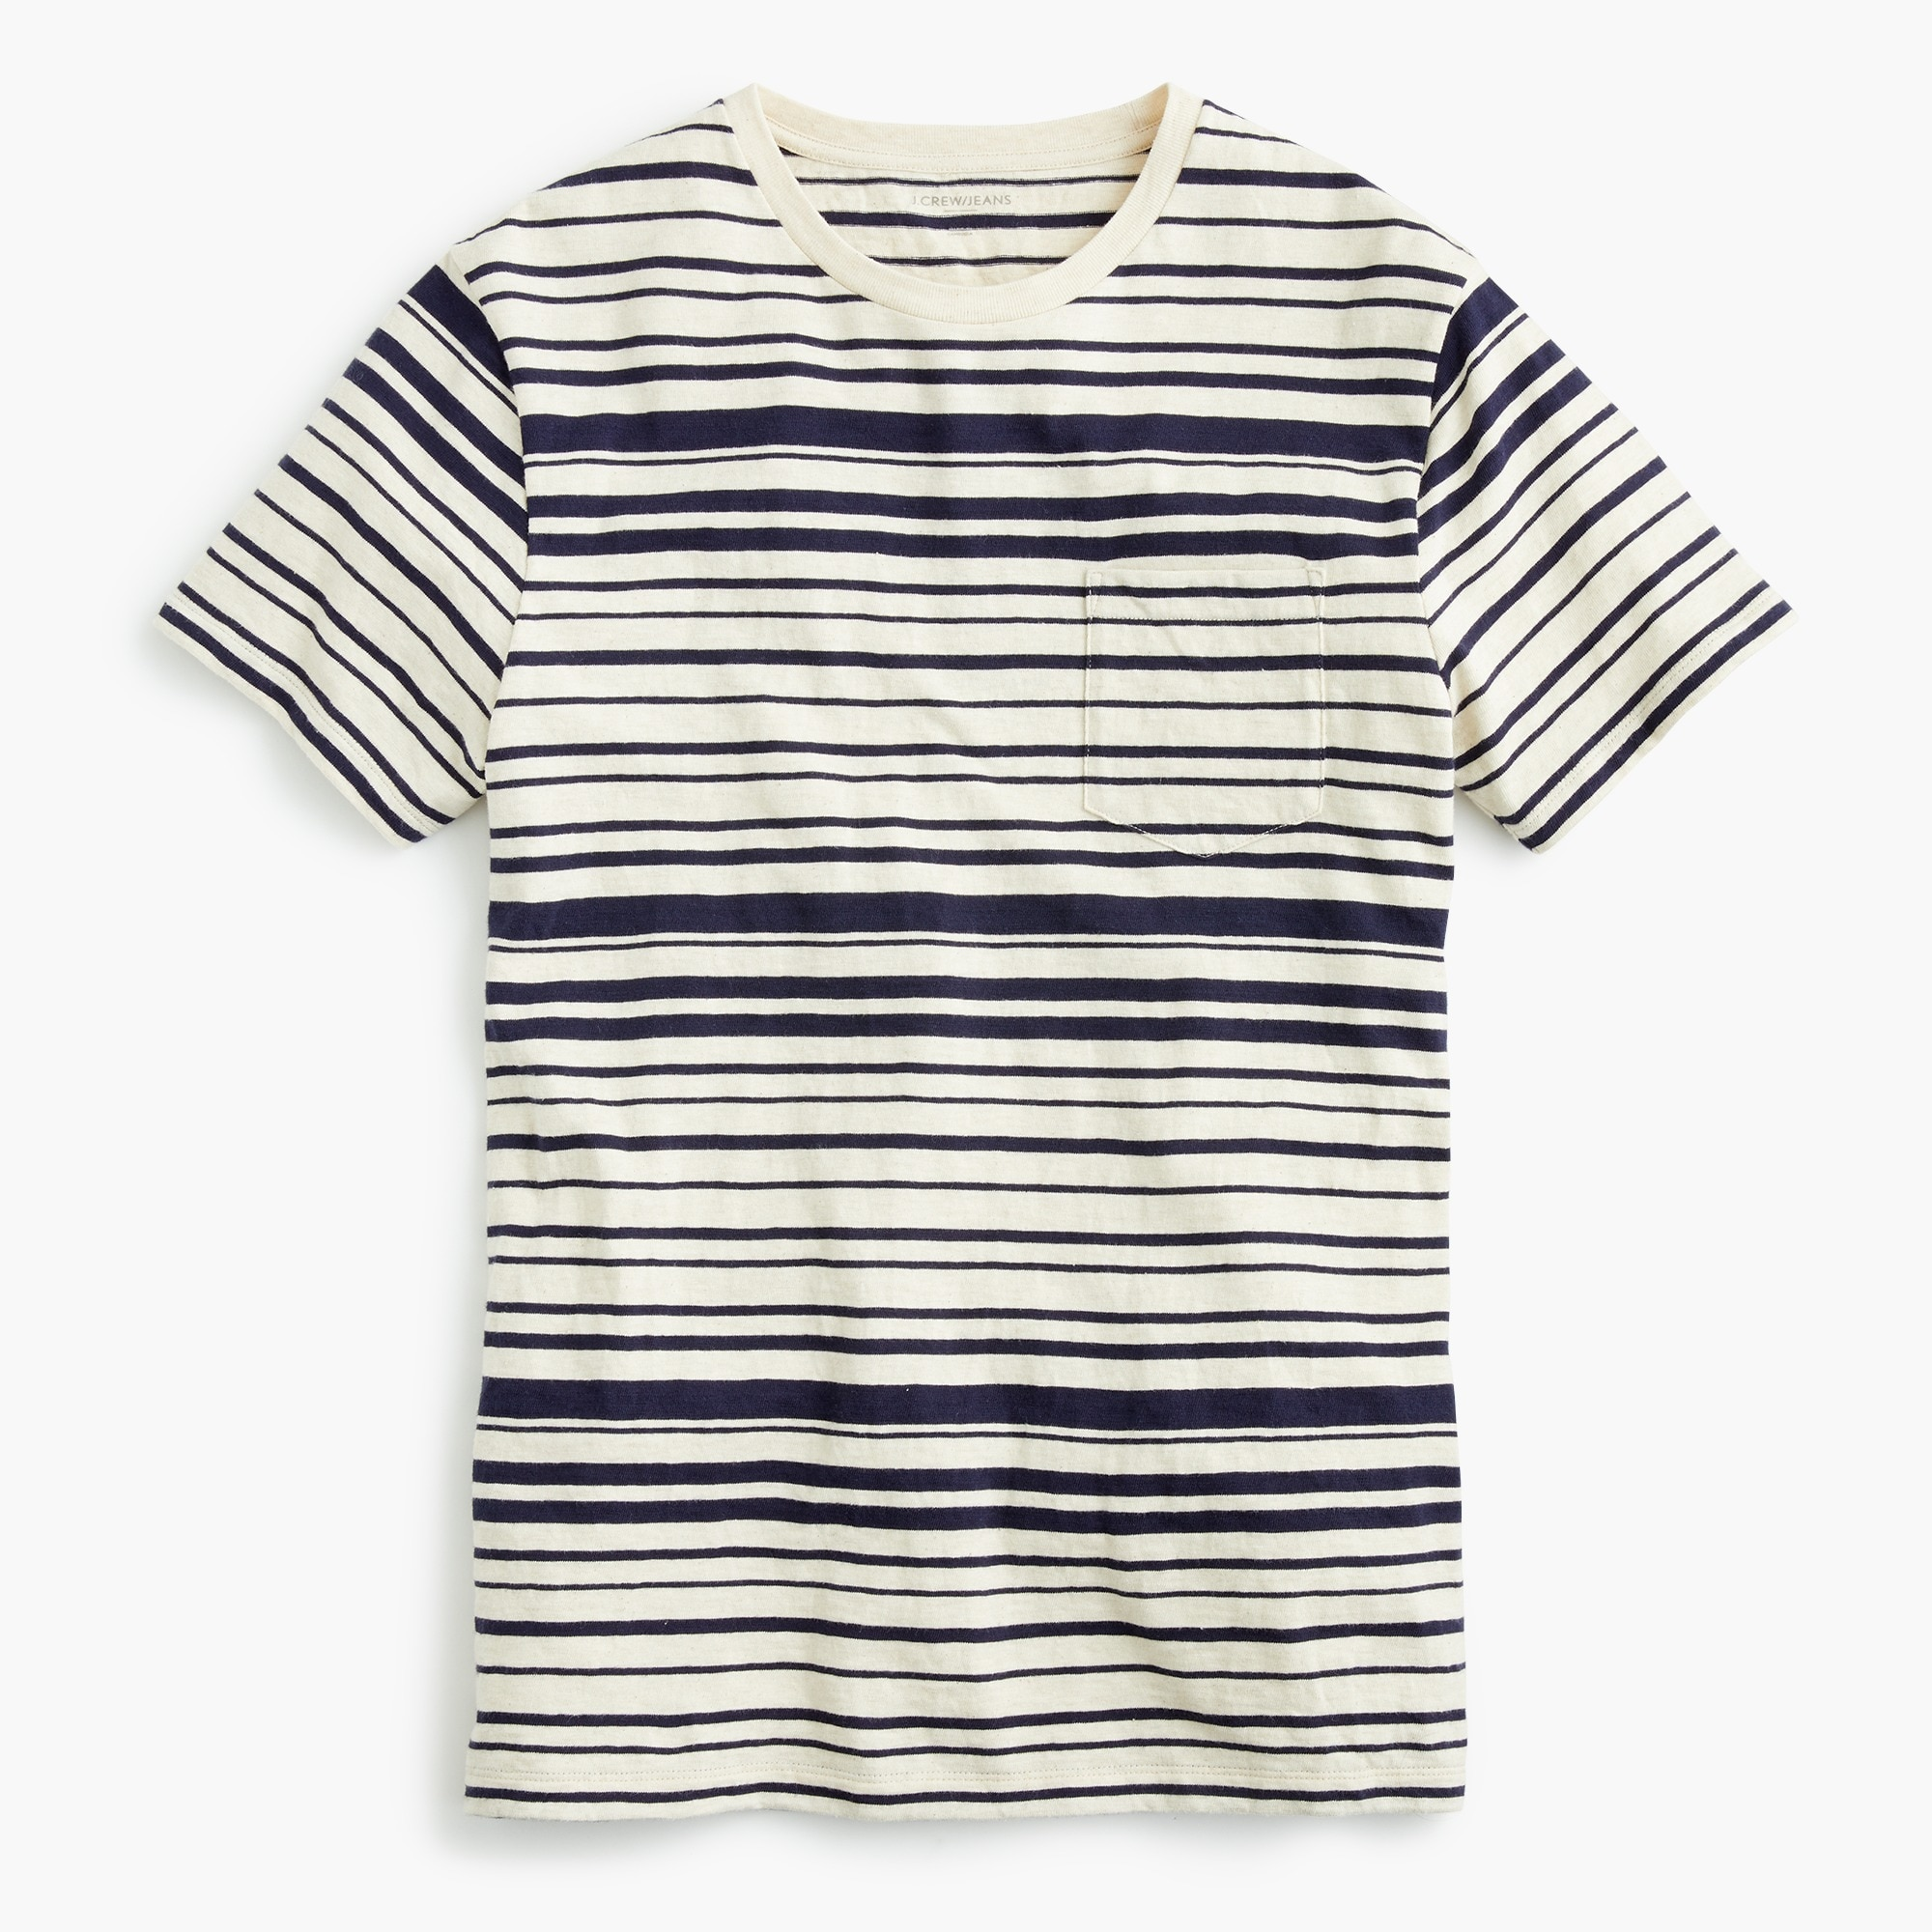 men's tall j.crew jeans slub cotton t-shirt in variegated stripe - men's knits